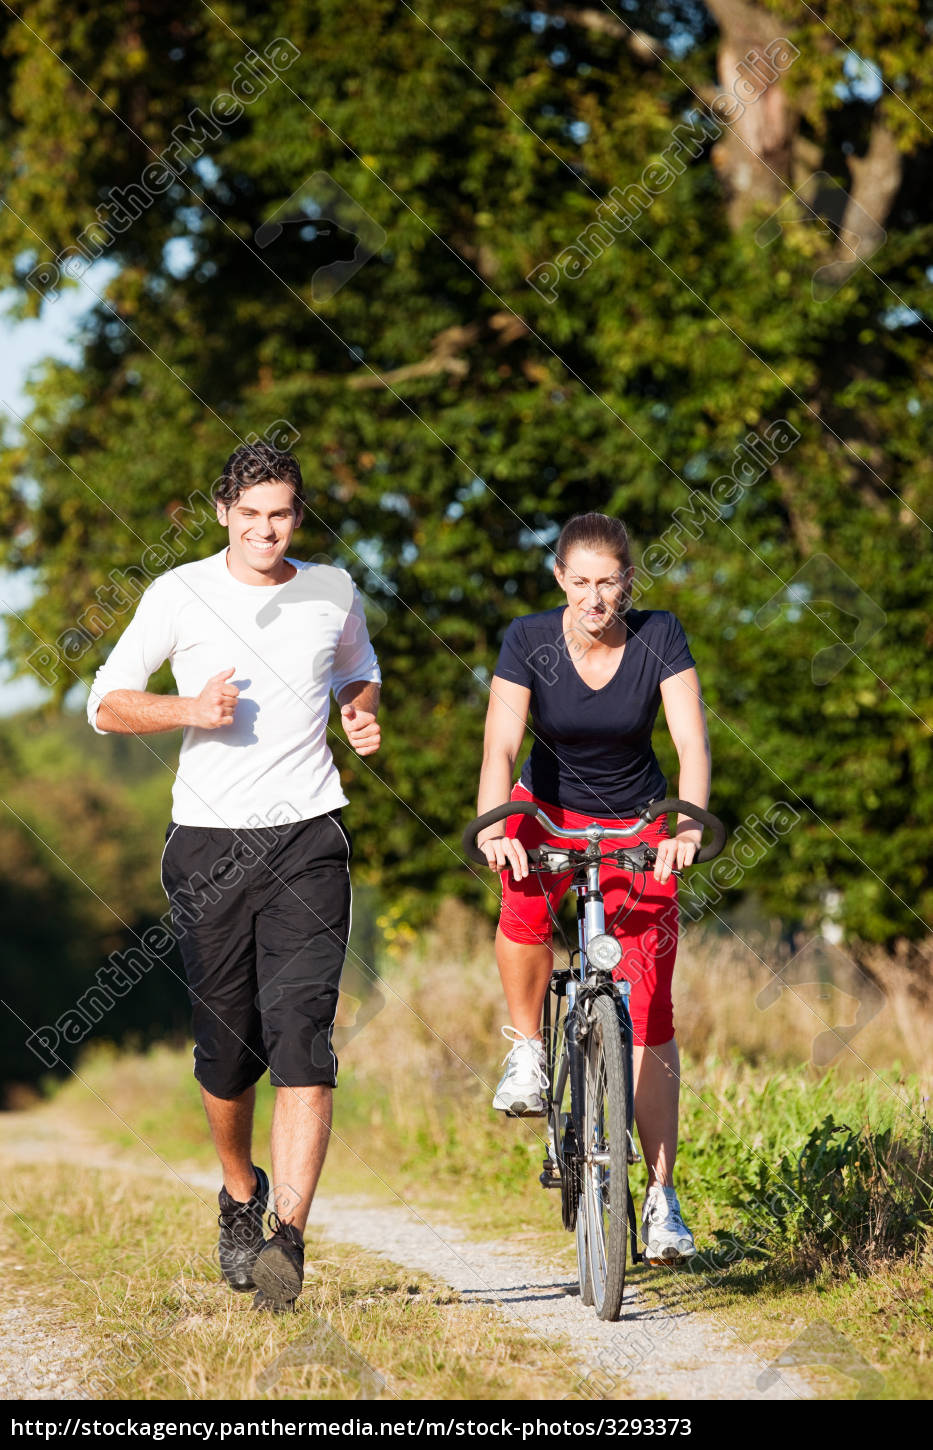 sport, couple, jogging, and, riding, a - 3293373